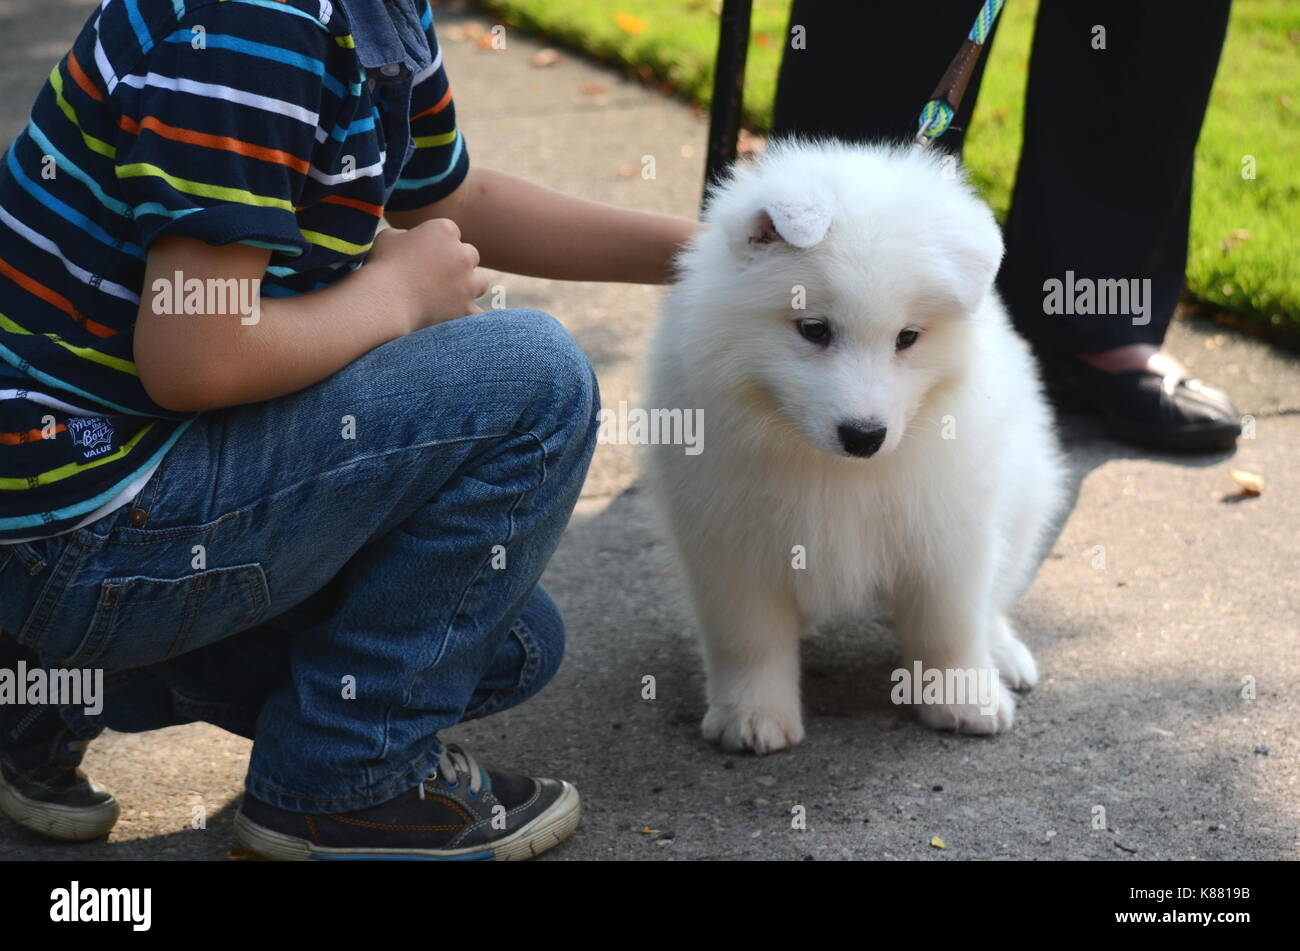 Japanese Spitz Puppy Stock Photos Japanese Spitz Puppy Stock